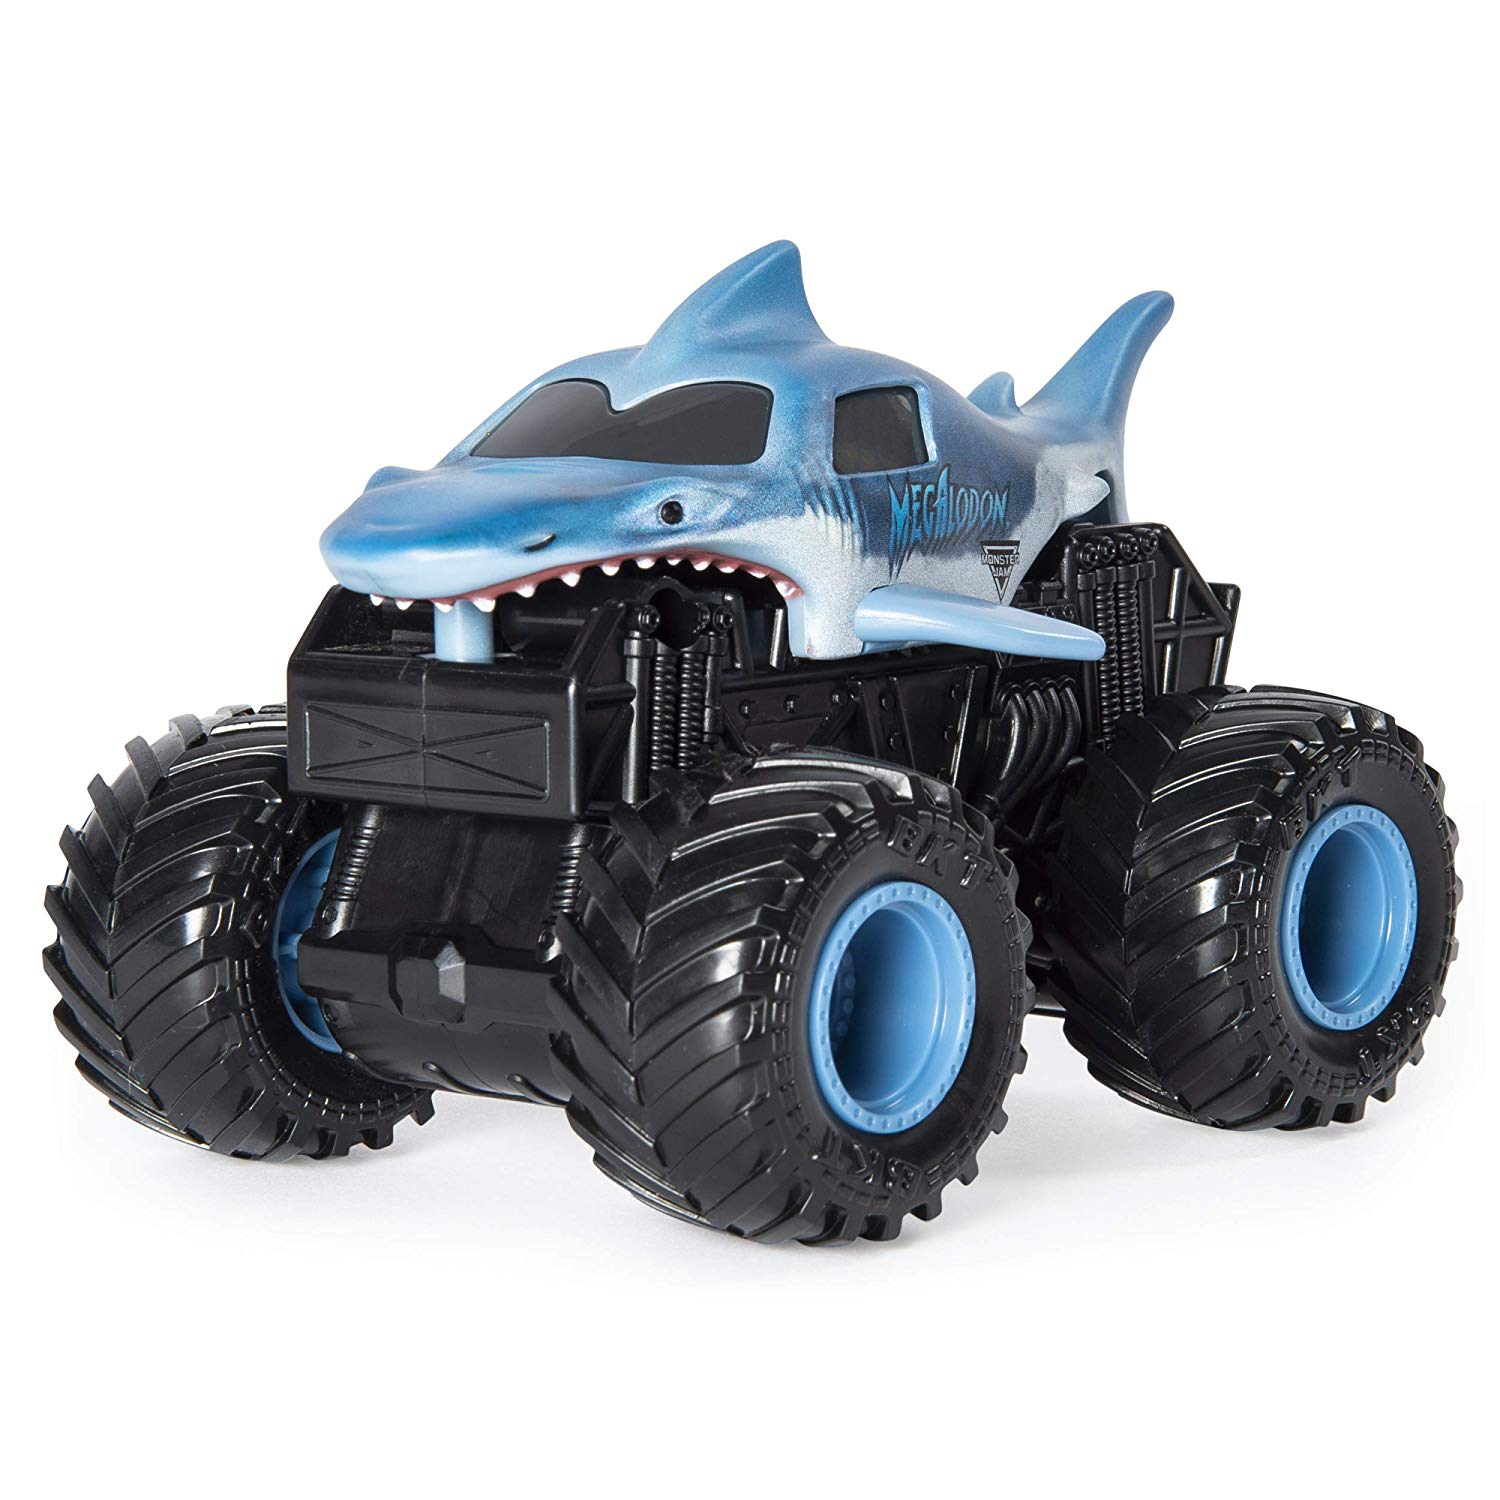 Monster Jam - Megalodon com Som - Escala 1:43 - Original